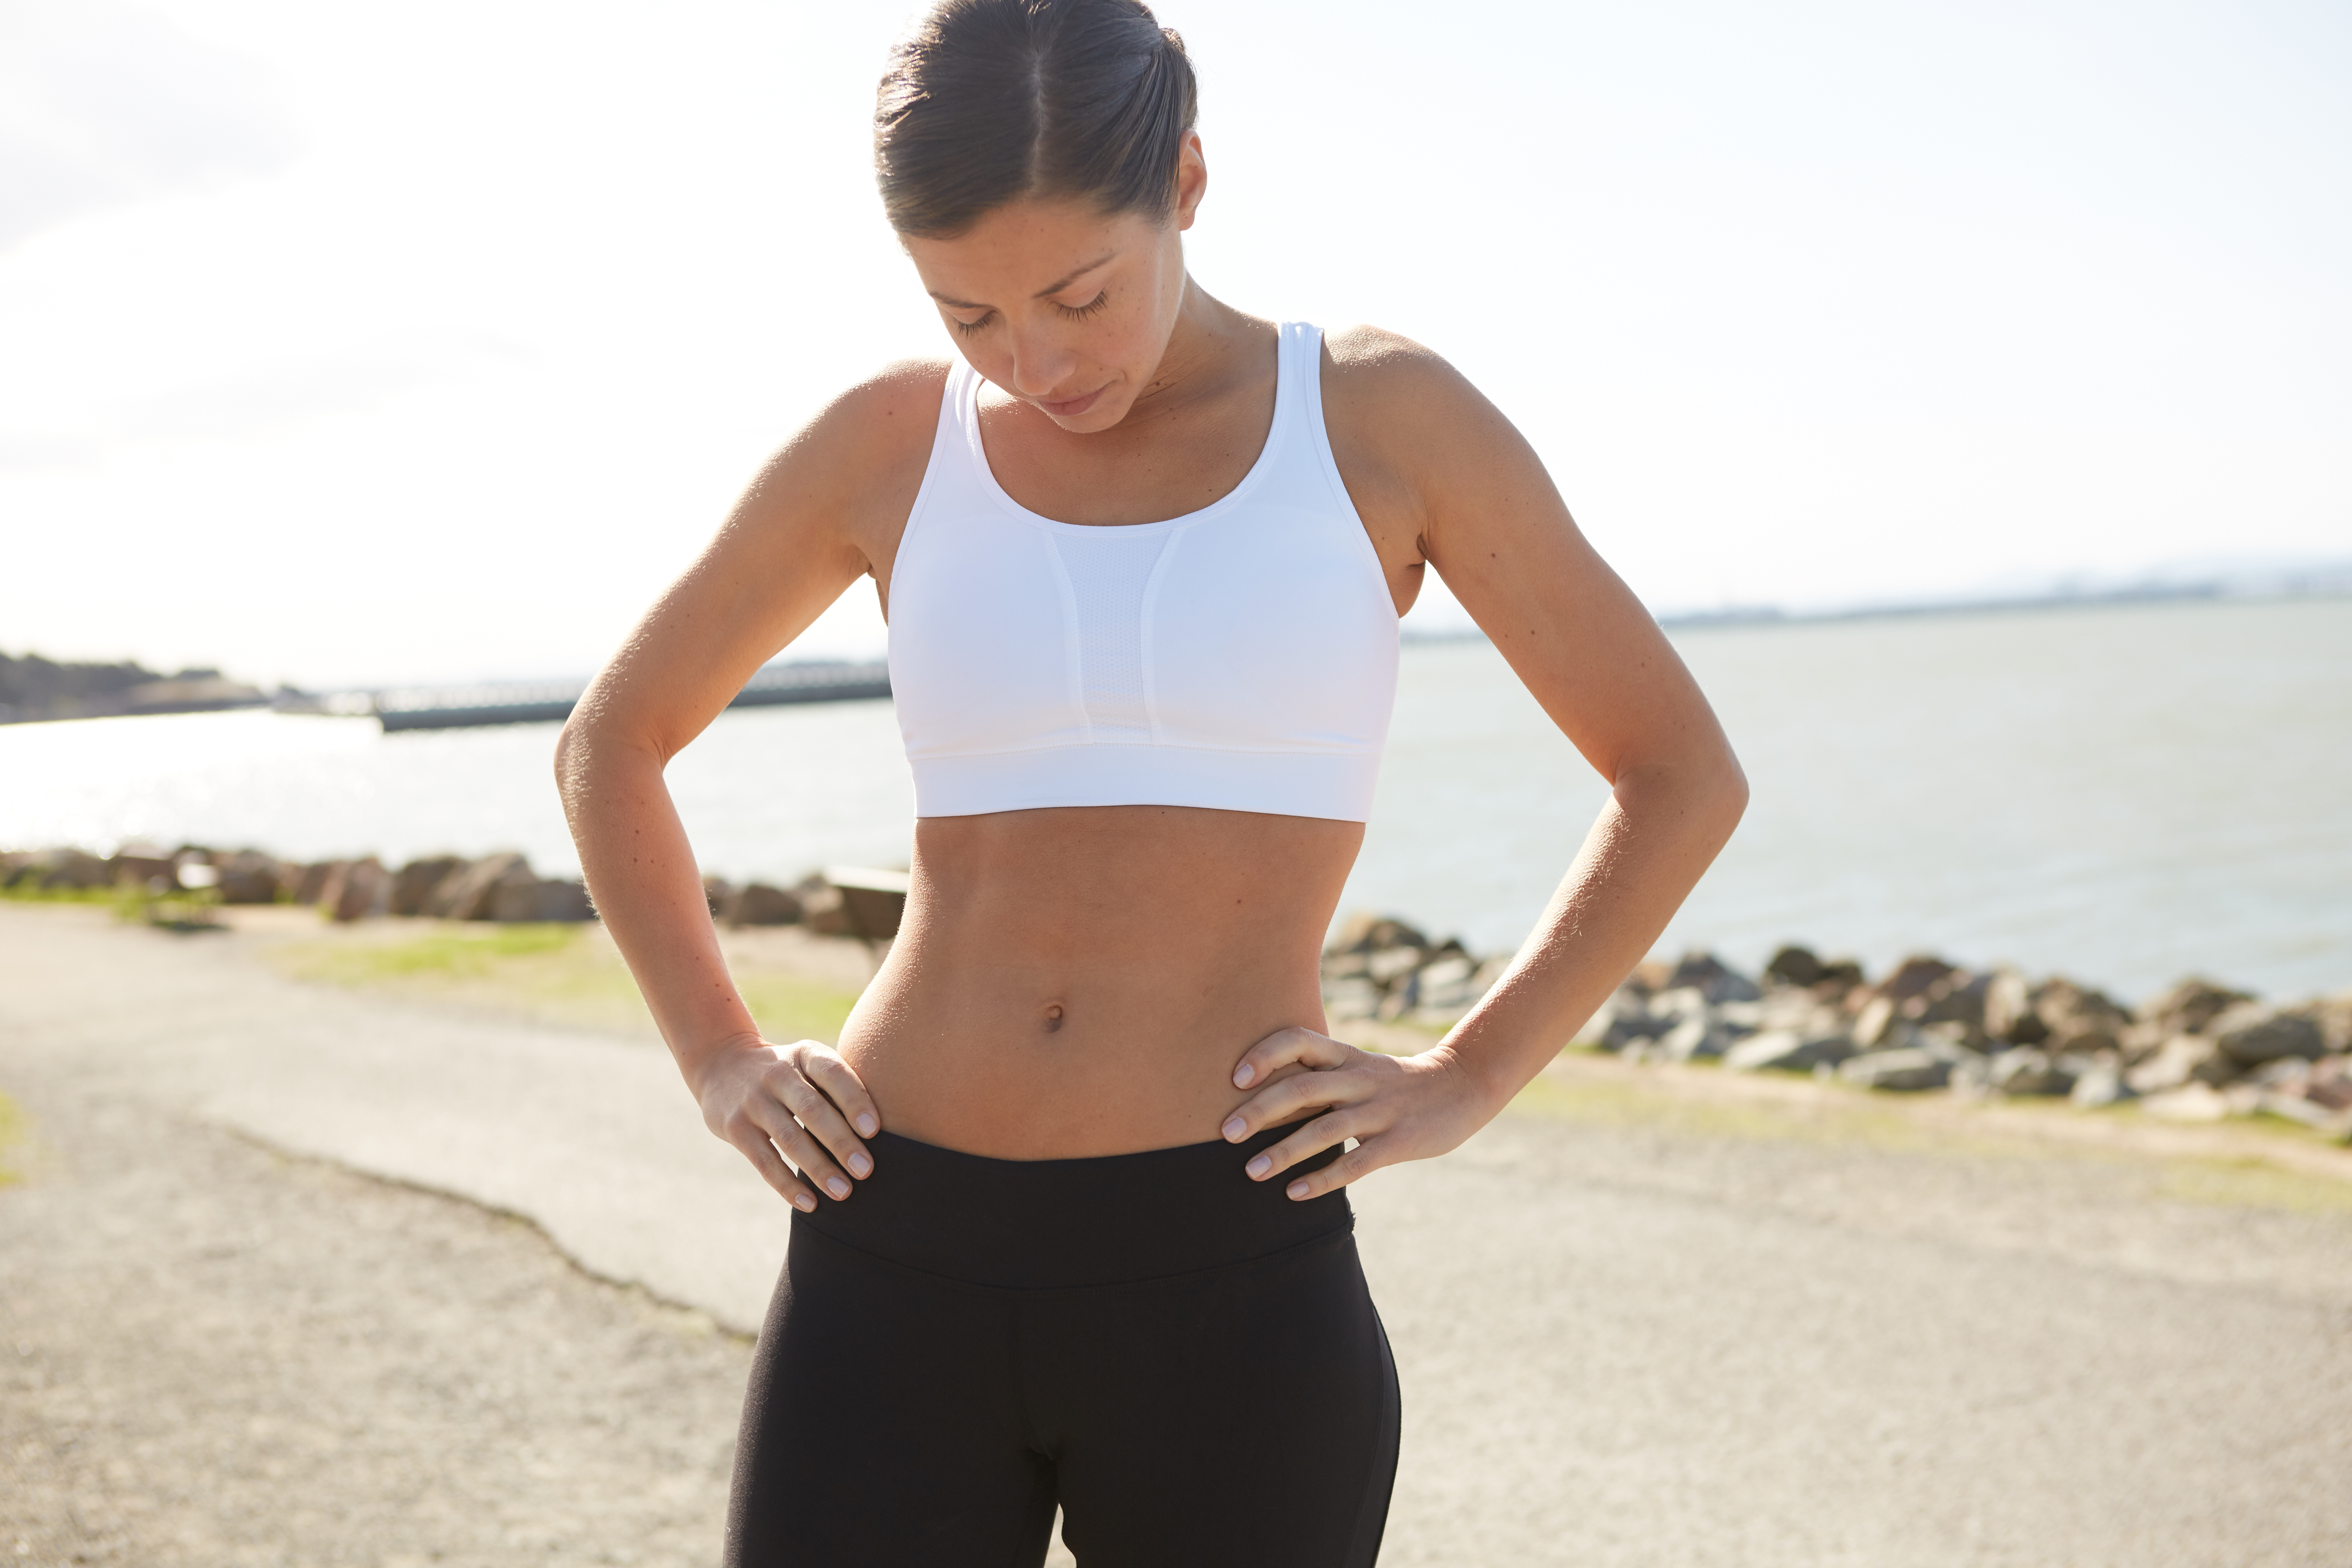 Flatten Your Abs Anywhere, Anytime With This Simple Move